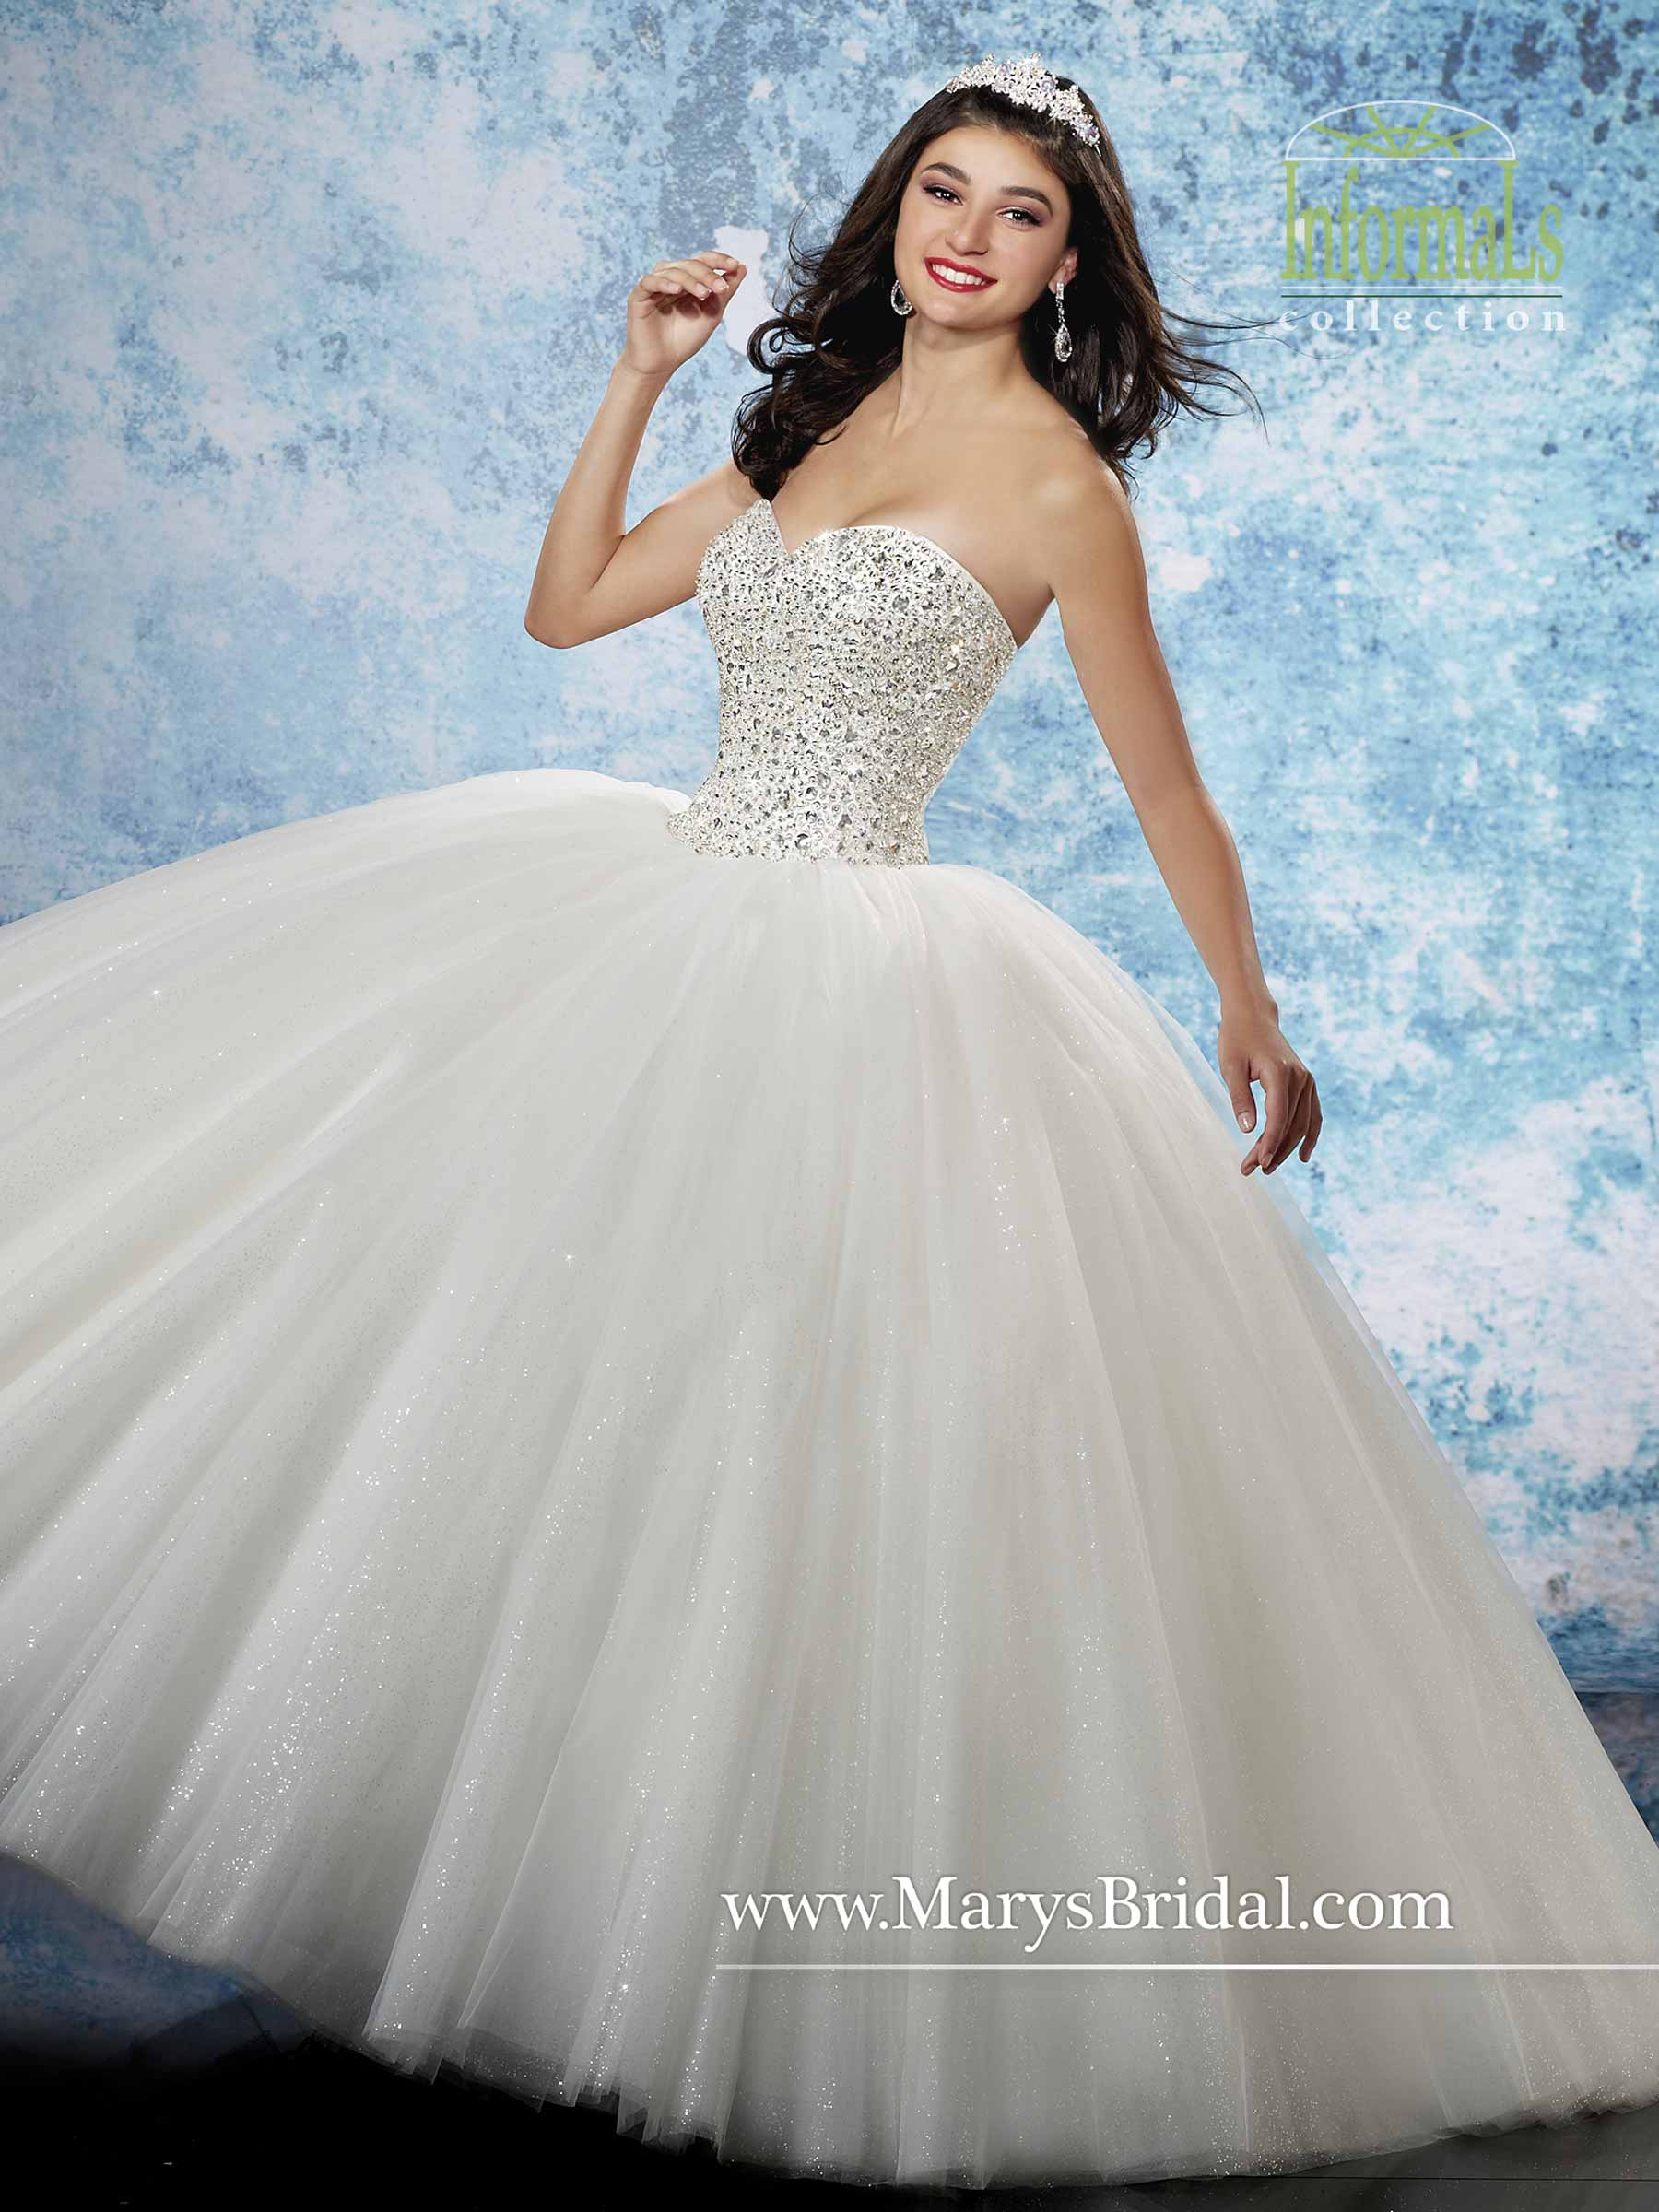 0c0aa9547b2de Bridal Ball Gowns | Style - 2B800 in Light Blue, Ivory, or White Color